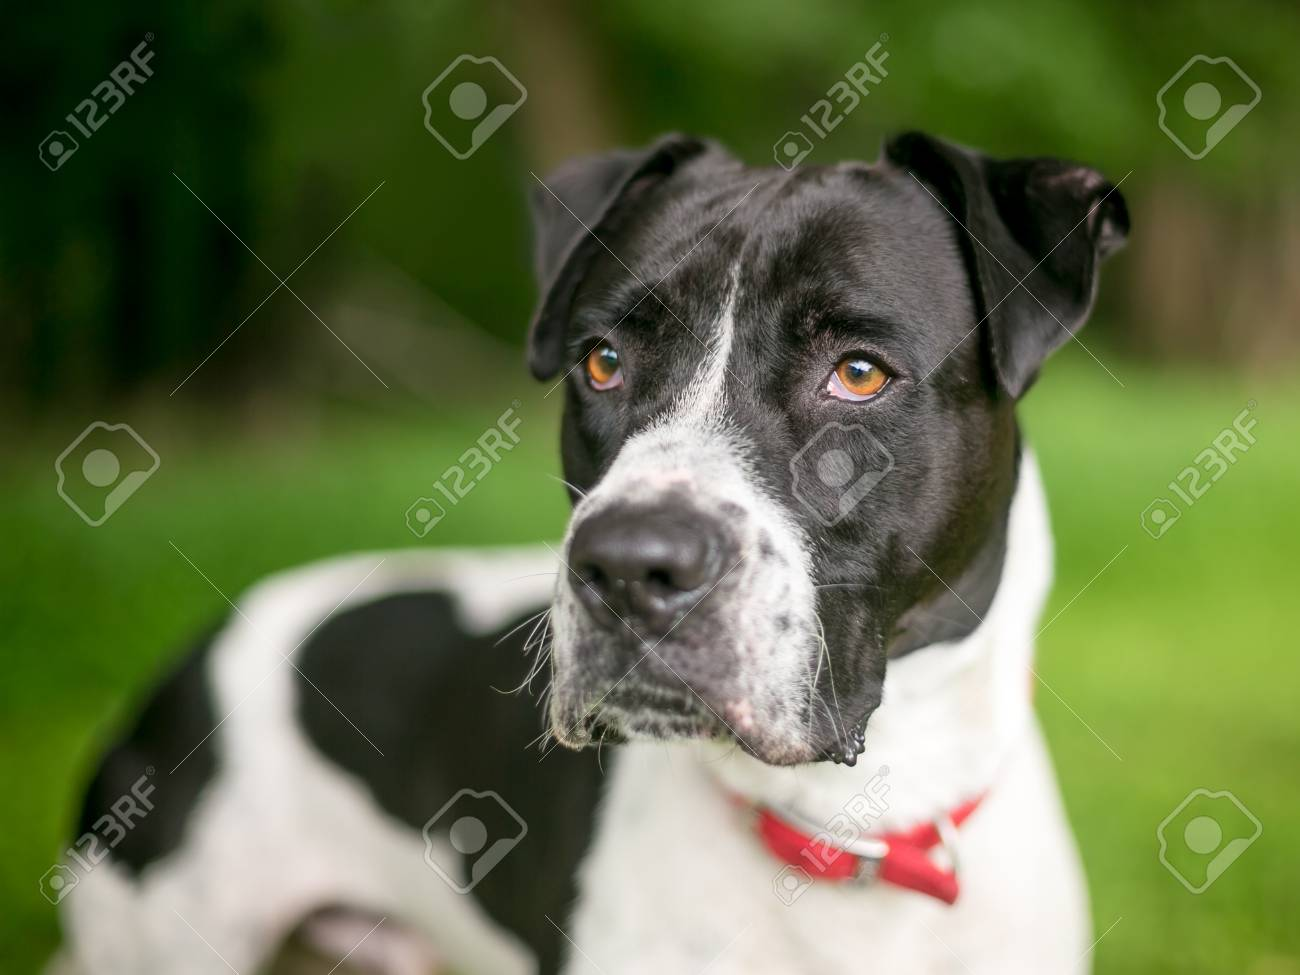 A Black And White American Bulldog Mixed Breed Dog Outdoors Stock